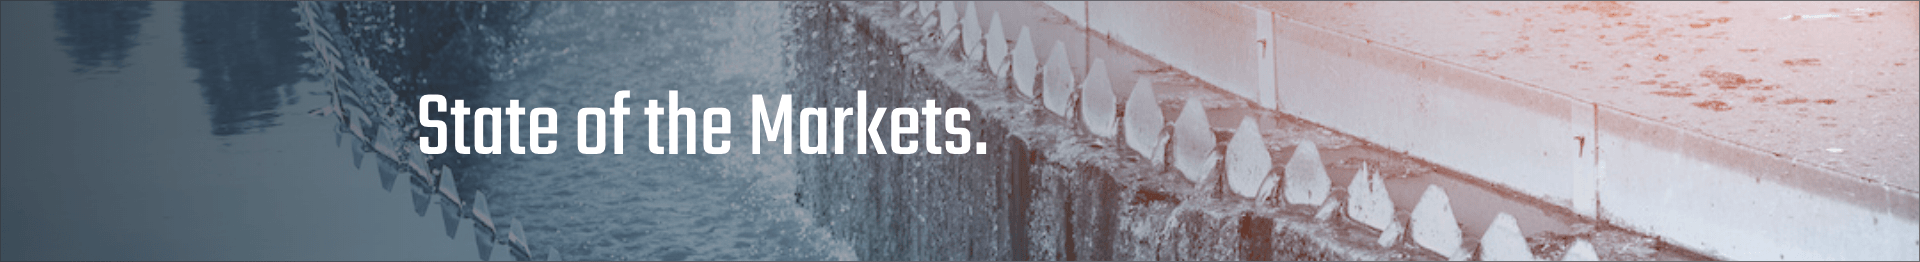 state of the markets